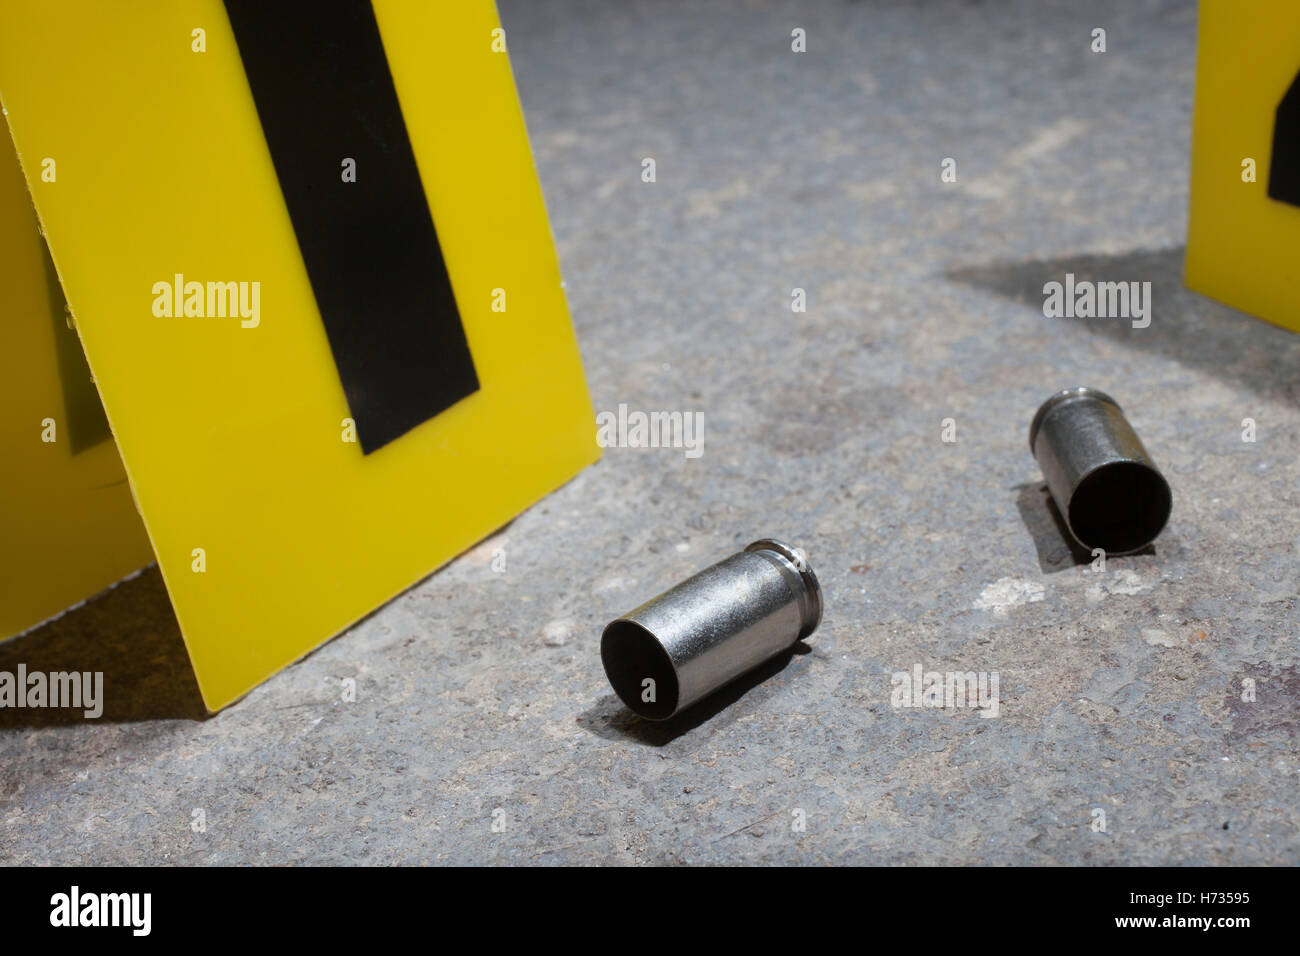 Empty handgun brass on concrete with yellow evidence markers - Stock Image